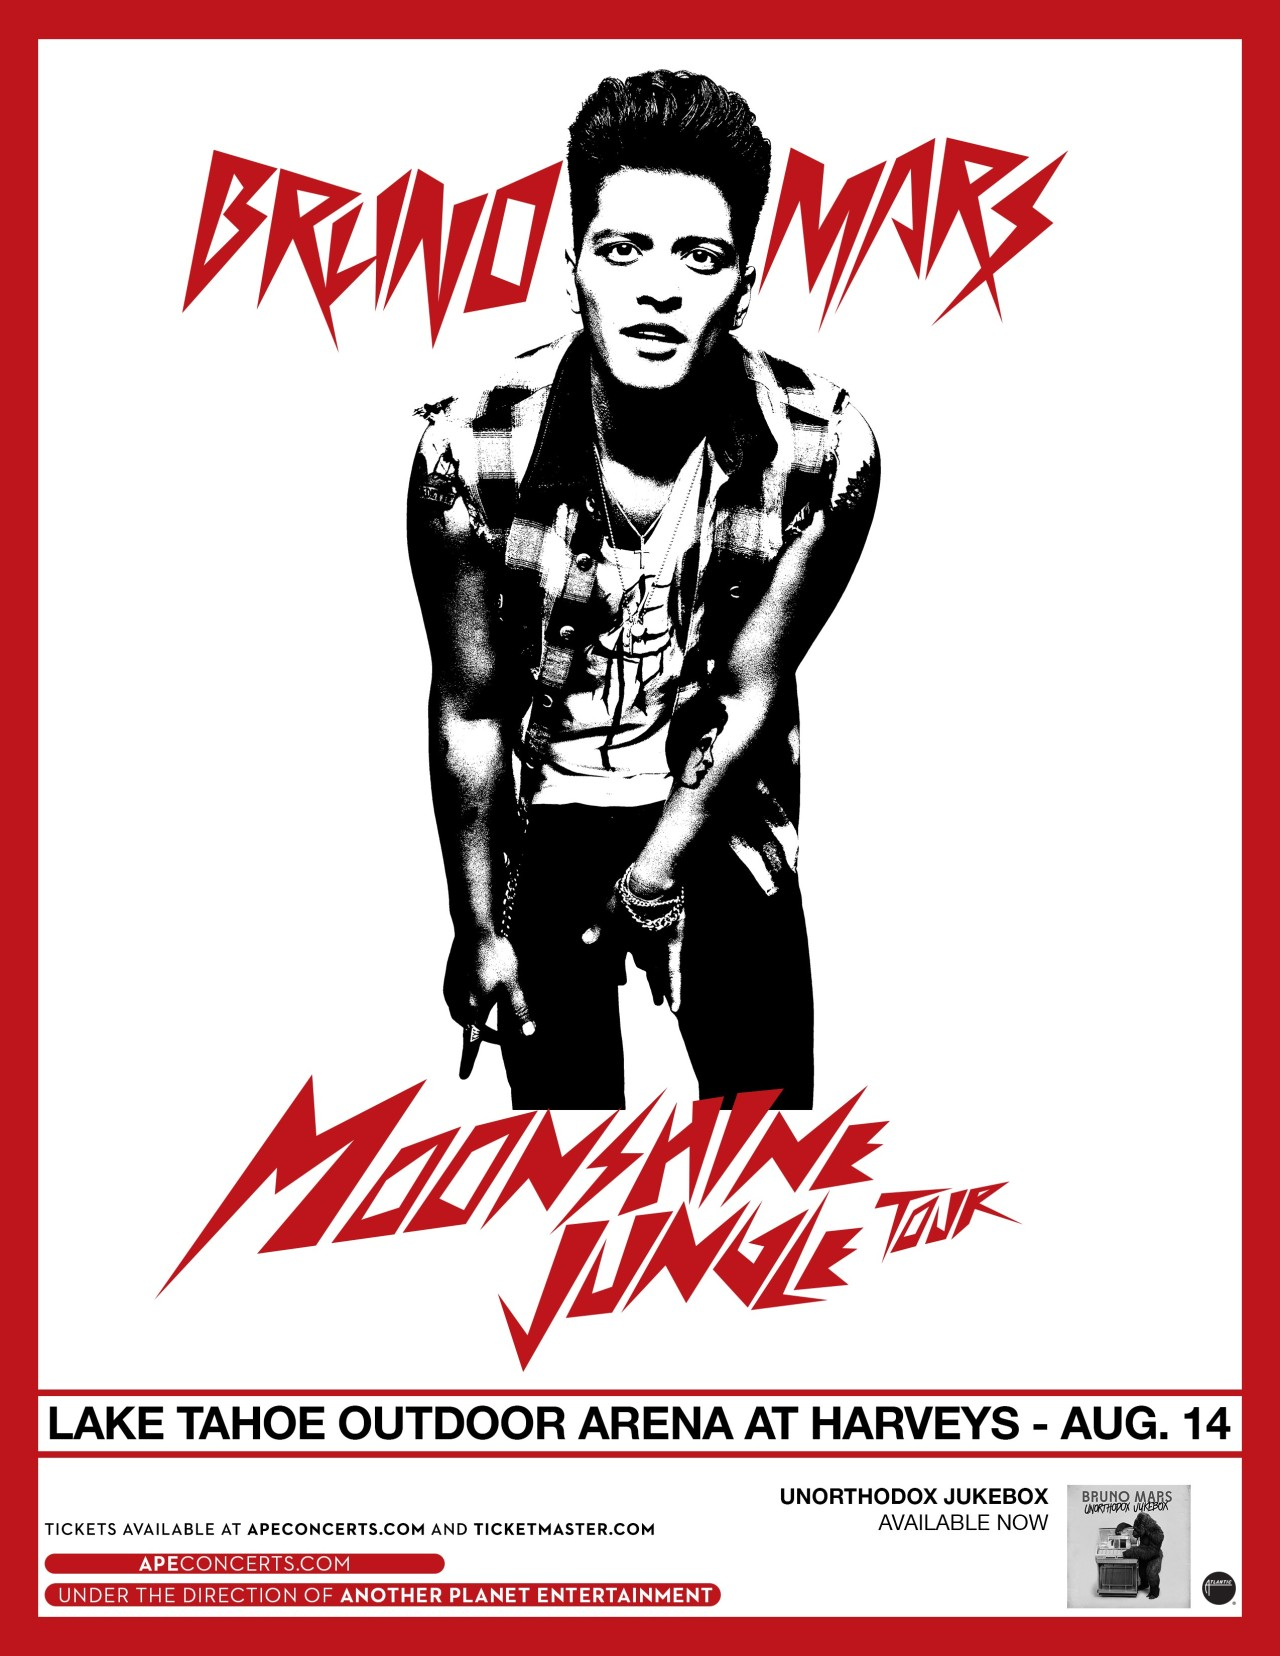 Gira >> 'The Moonshine Jungle Tour' 2013 [Madrid y Barcelona] - Página 24 Tumblr_n046mcV1bq1rgu4kio1_1280